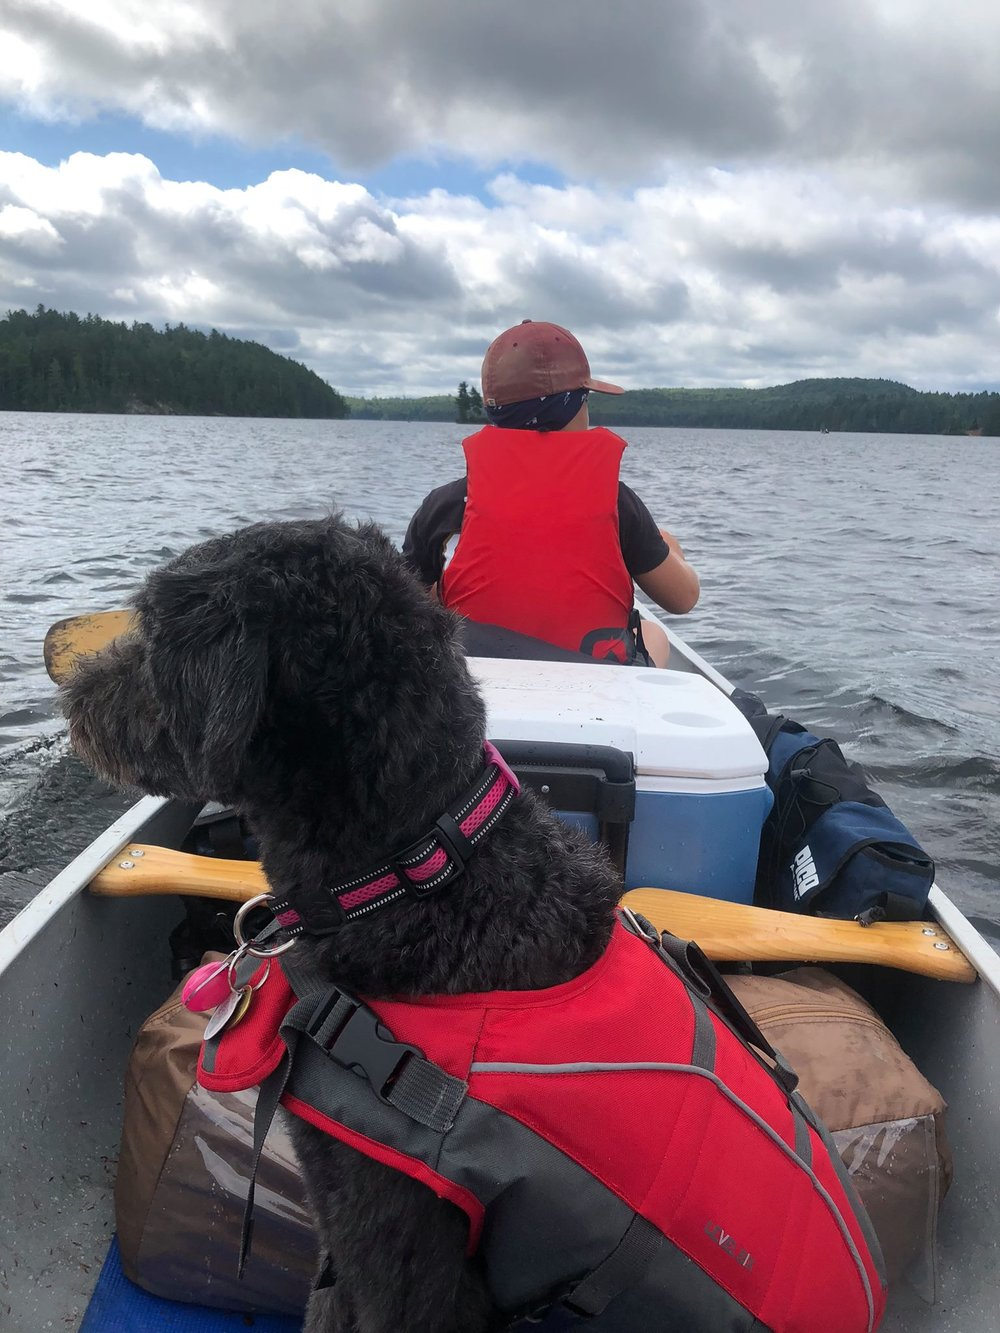 Pamela Fellbaum - Navigating the waters of Opeongo Lake in Algonquin Park - 10 year old at the helm and my dog Biscuit keeping a watchful eye on the other canoes in our party.